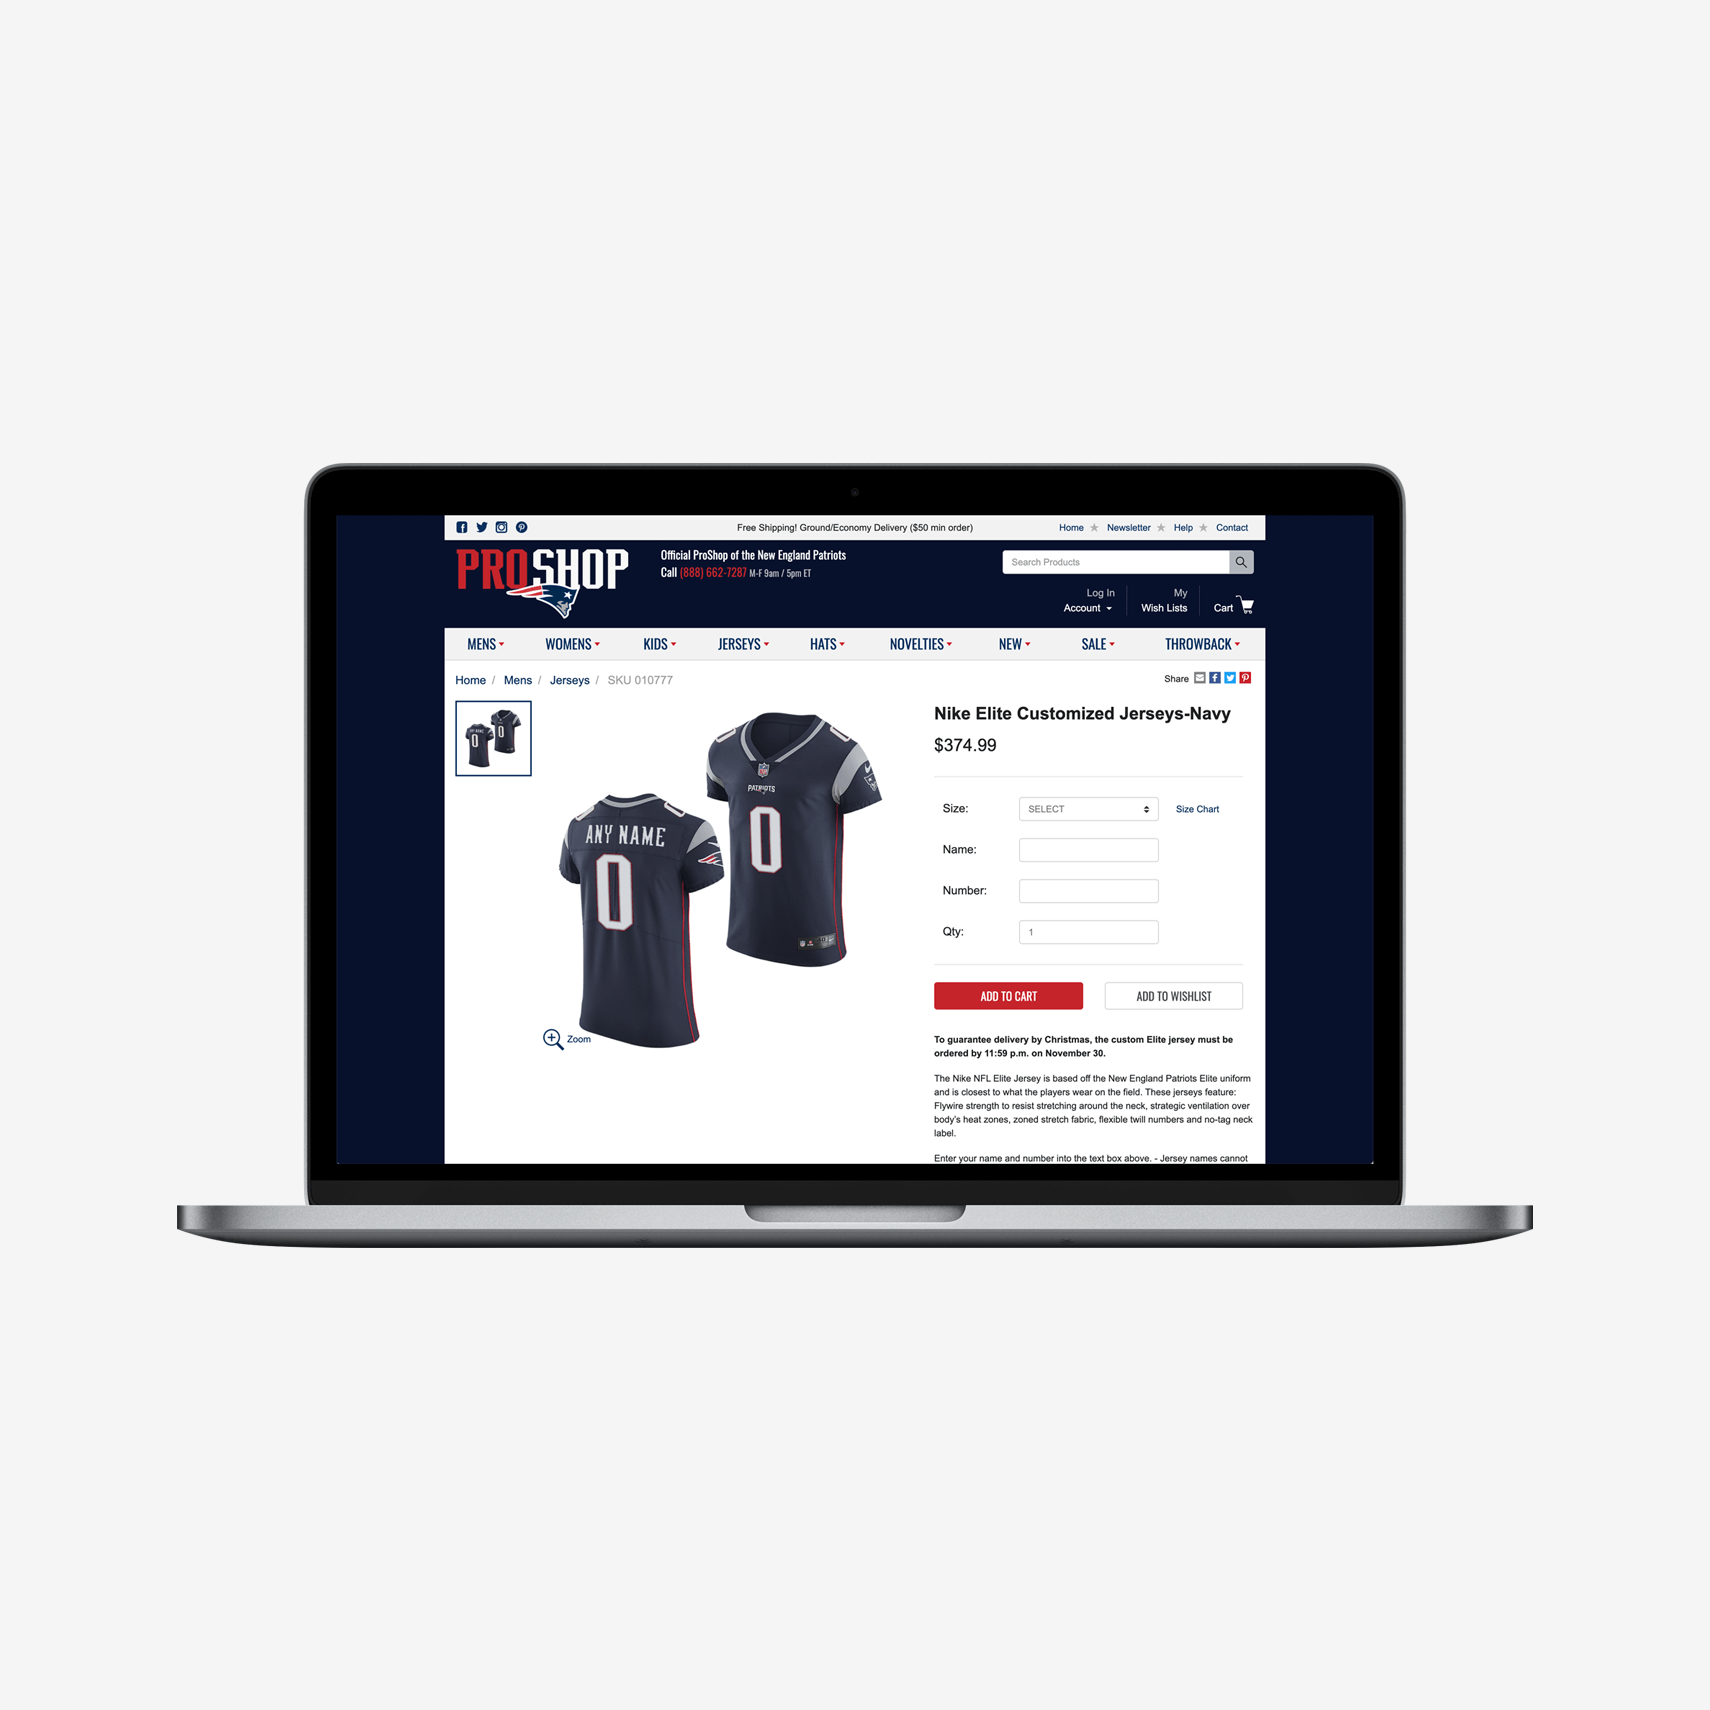 new england patriots fan merchandise online store built with spree commerce